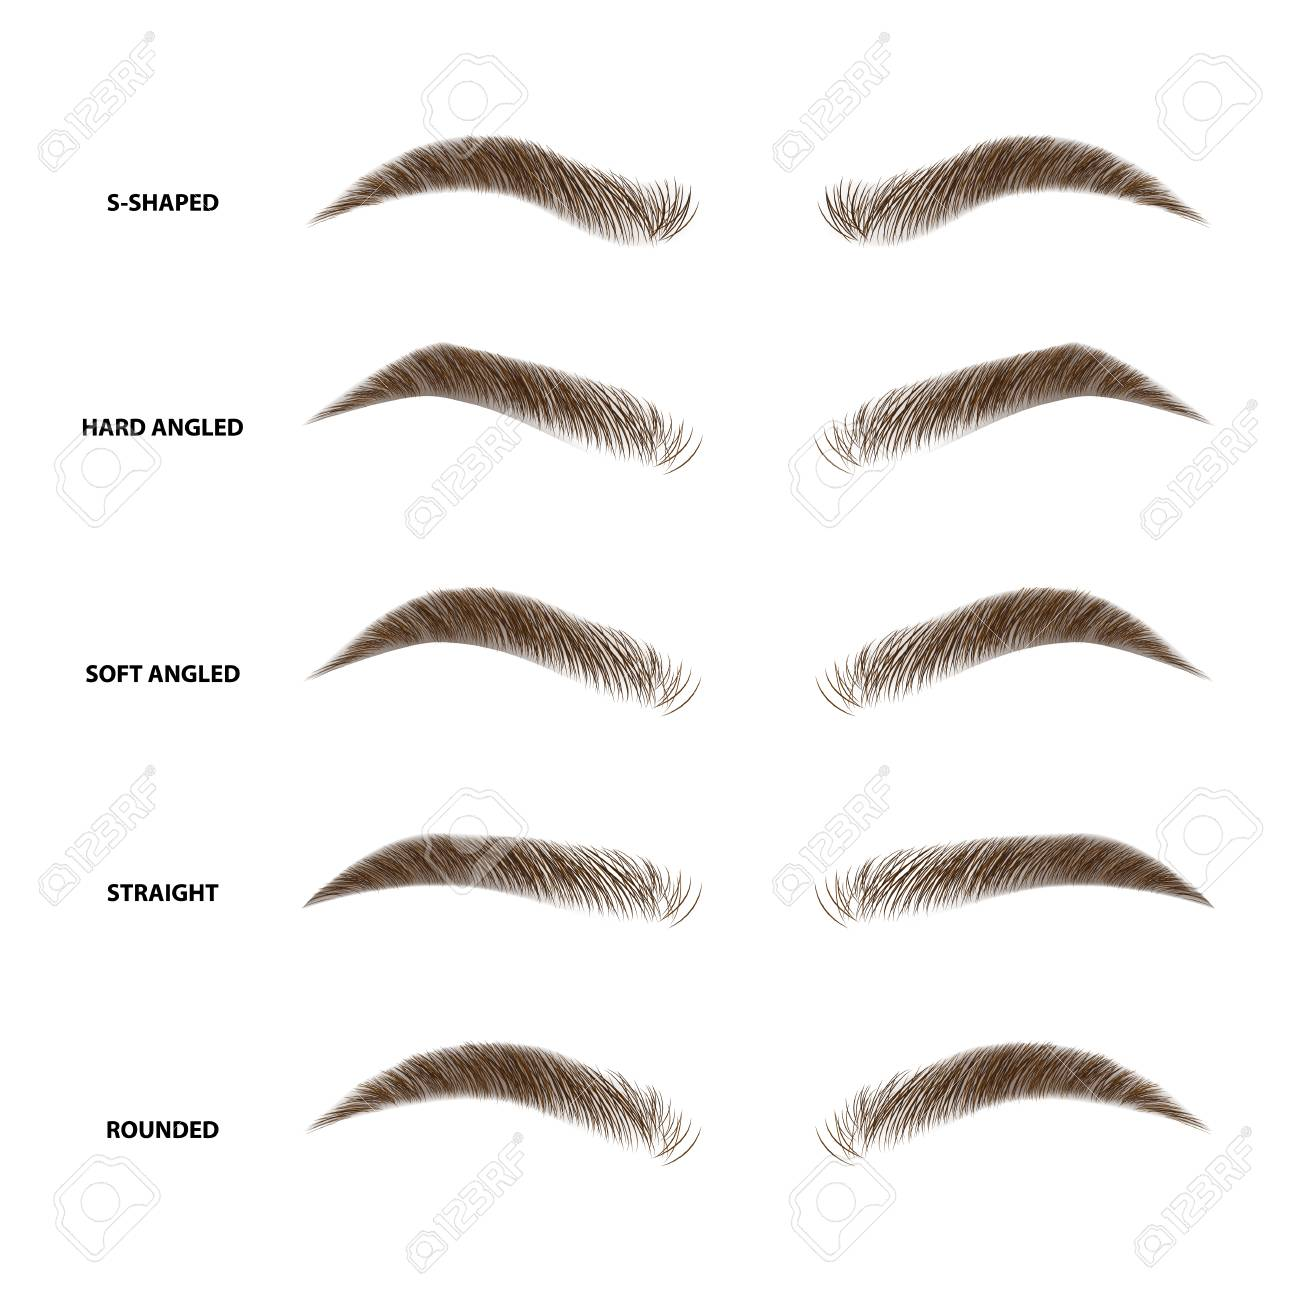 Types Of Eyebrows Vector Illustration Royalty Free Cliparts Vectors